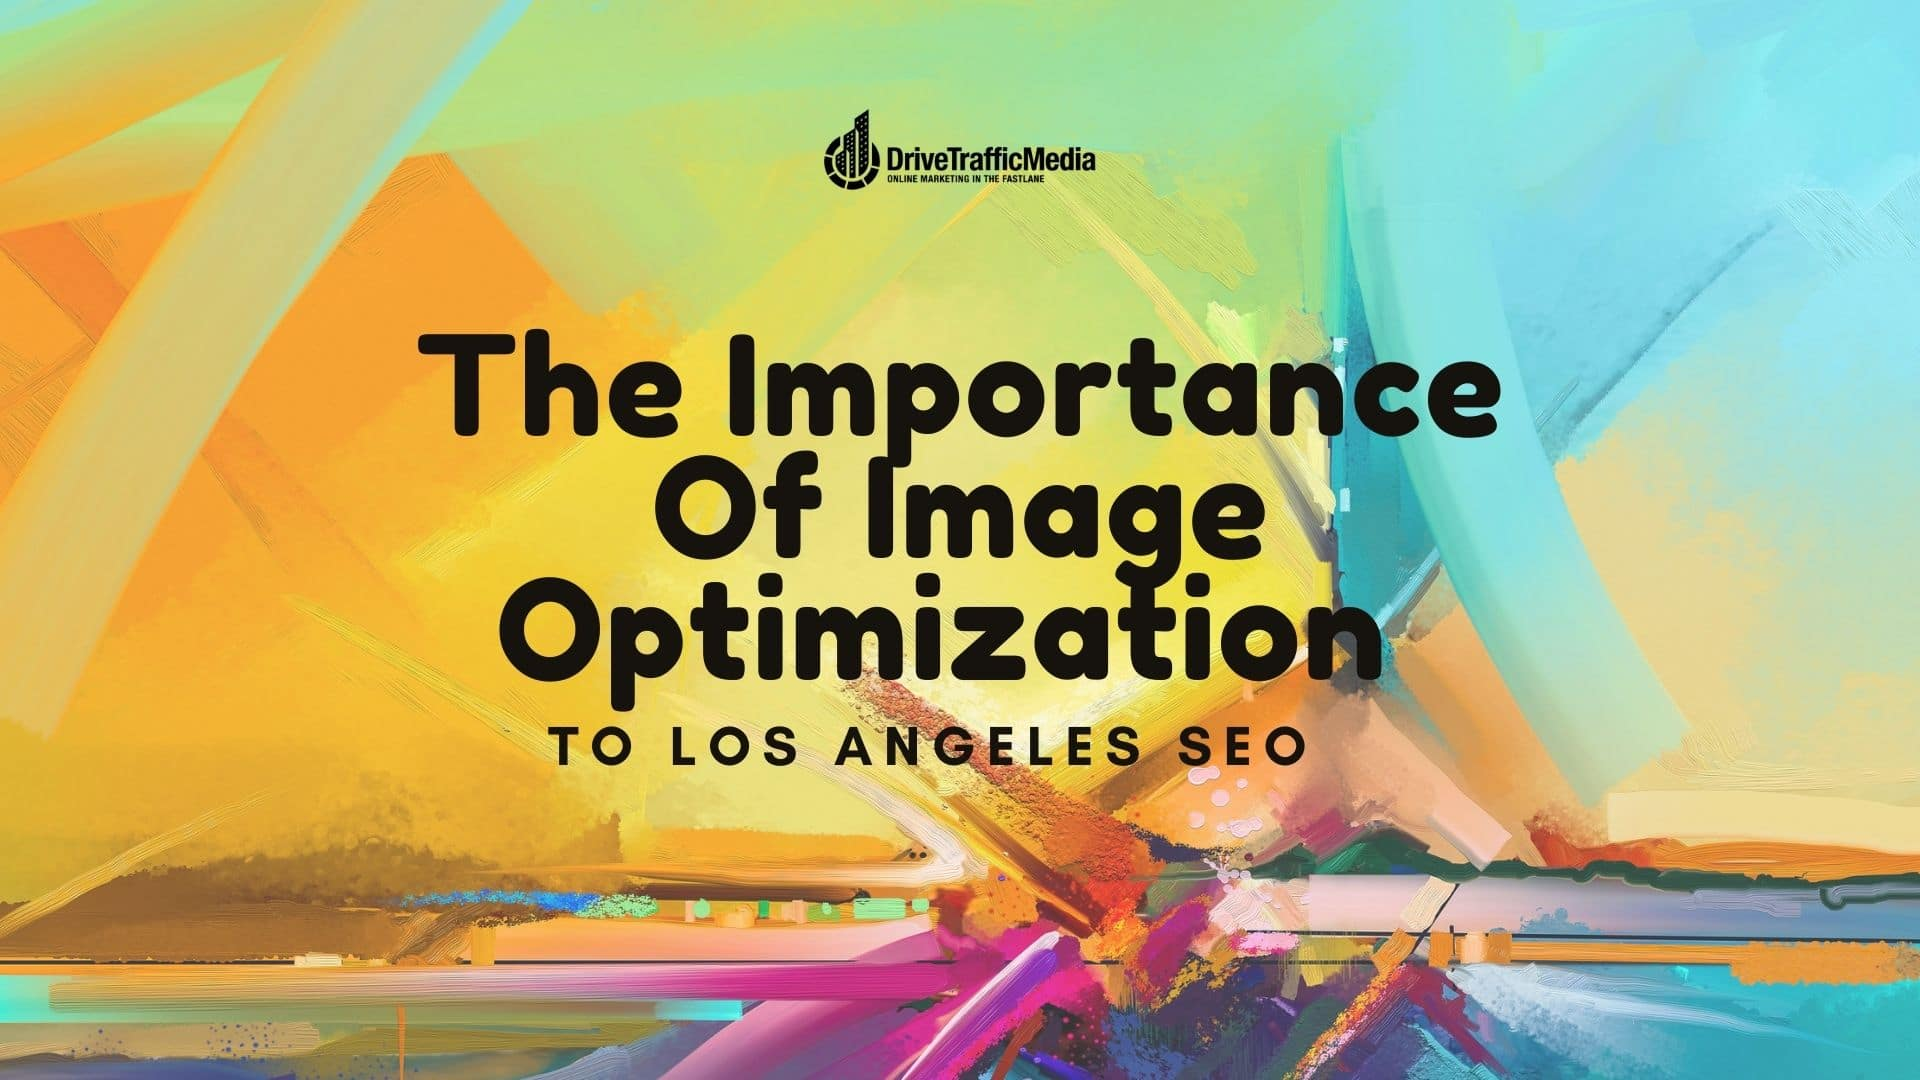 Tactics-for-optimizing-images-for-your-Los-Angeles-SEO